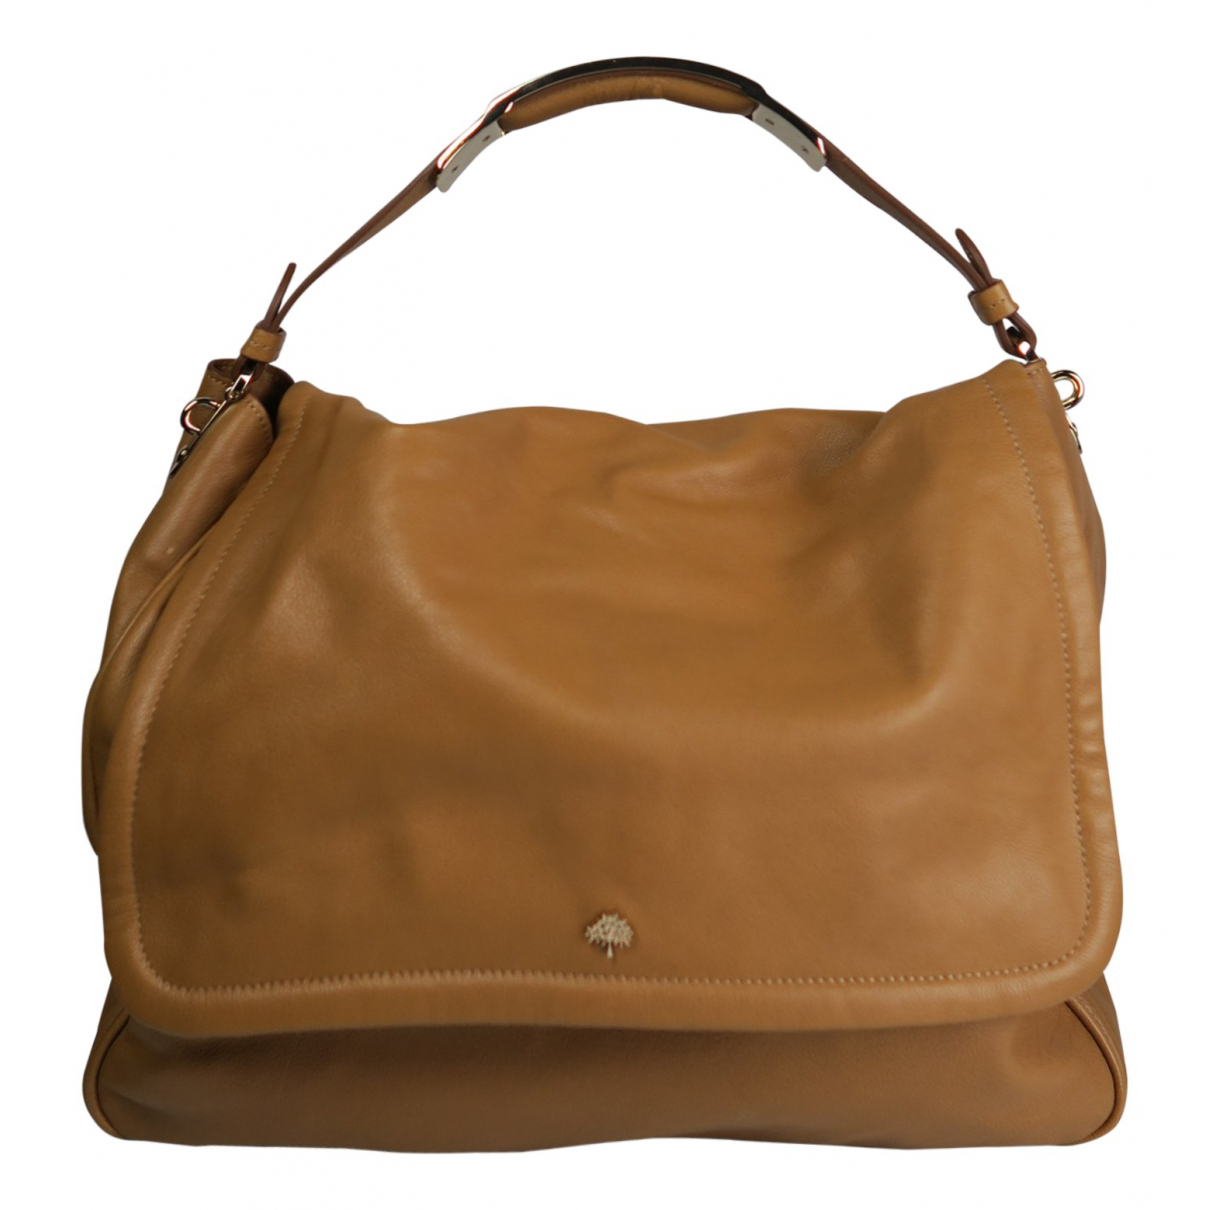 Mulberry N Brown Leather handbag for Women N